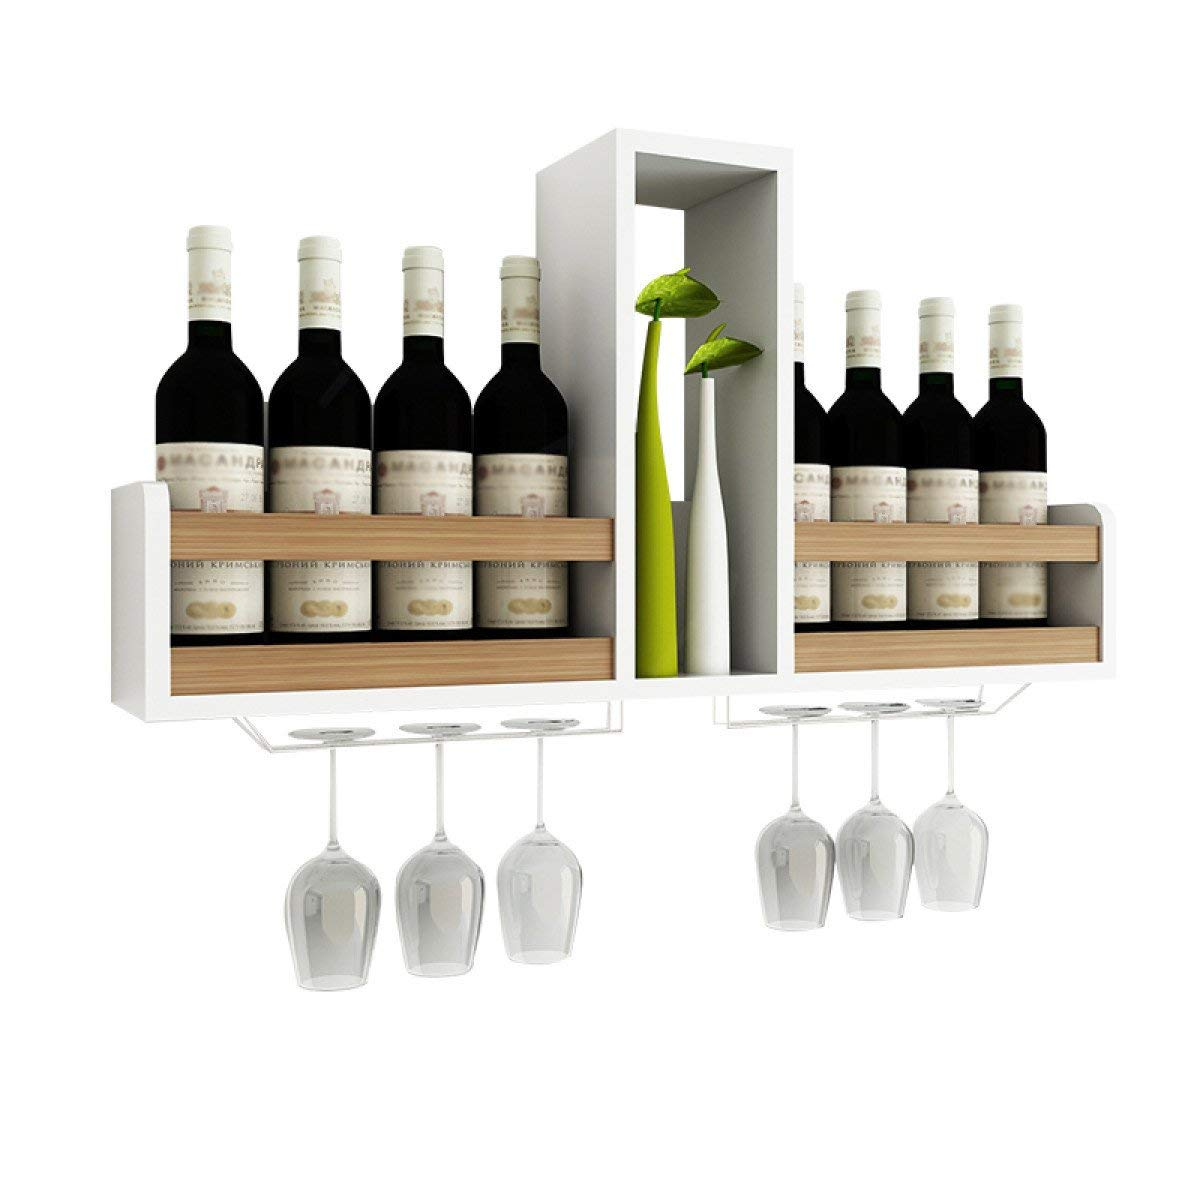 Sunday Qh Wine Racks Wall Hangings Wrought Iron Shelves Cabinets Hanging Gl Holders Vintage Pipes Creative Decoration E